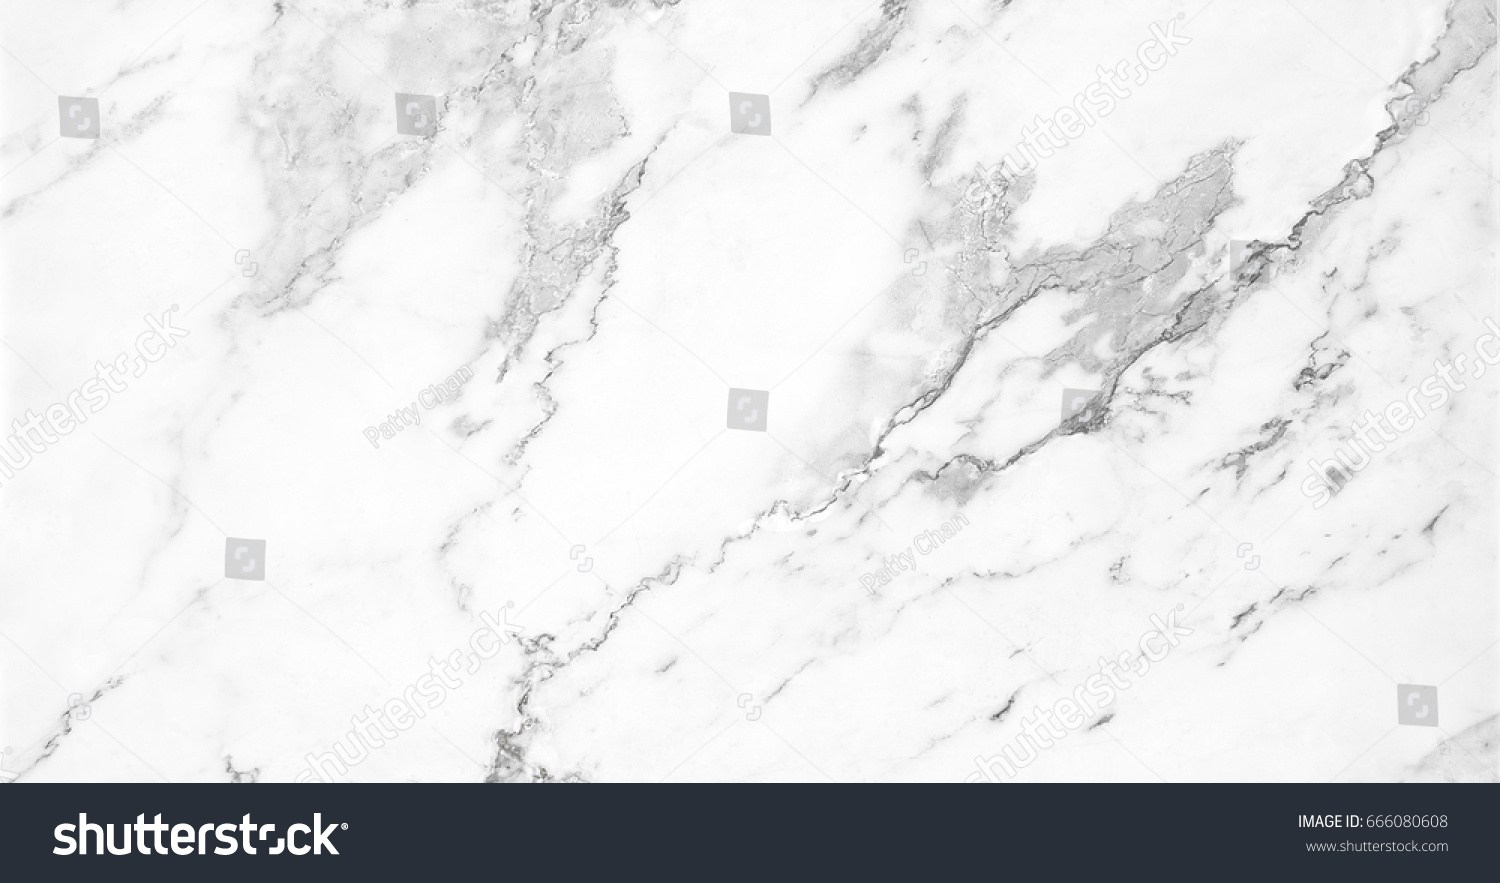 Best Wallpaper High Resolution Marble - stock-photo-natural-white-marble-texture-for-skin-tiles-wallpaper-luxurious-background-stone-ceramic-art-wall-666080608  Photograph_801089.jpg